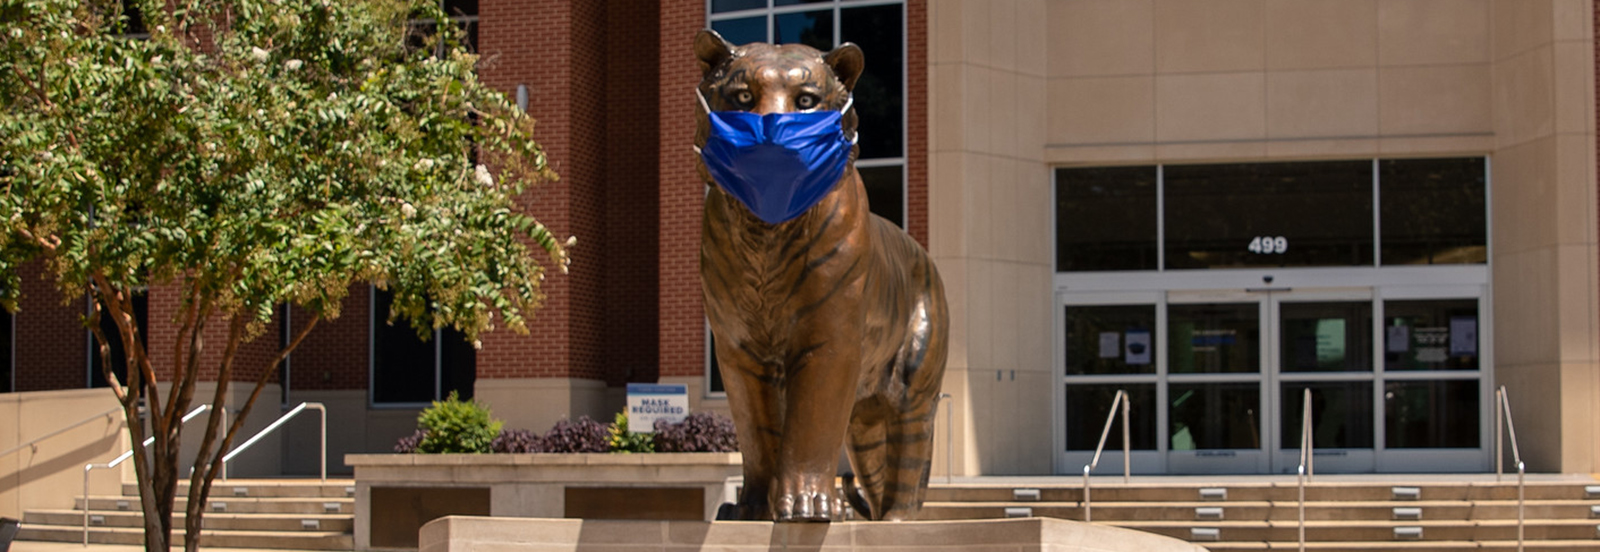 bronze tiger statue wearing blue face mask